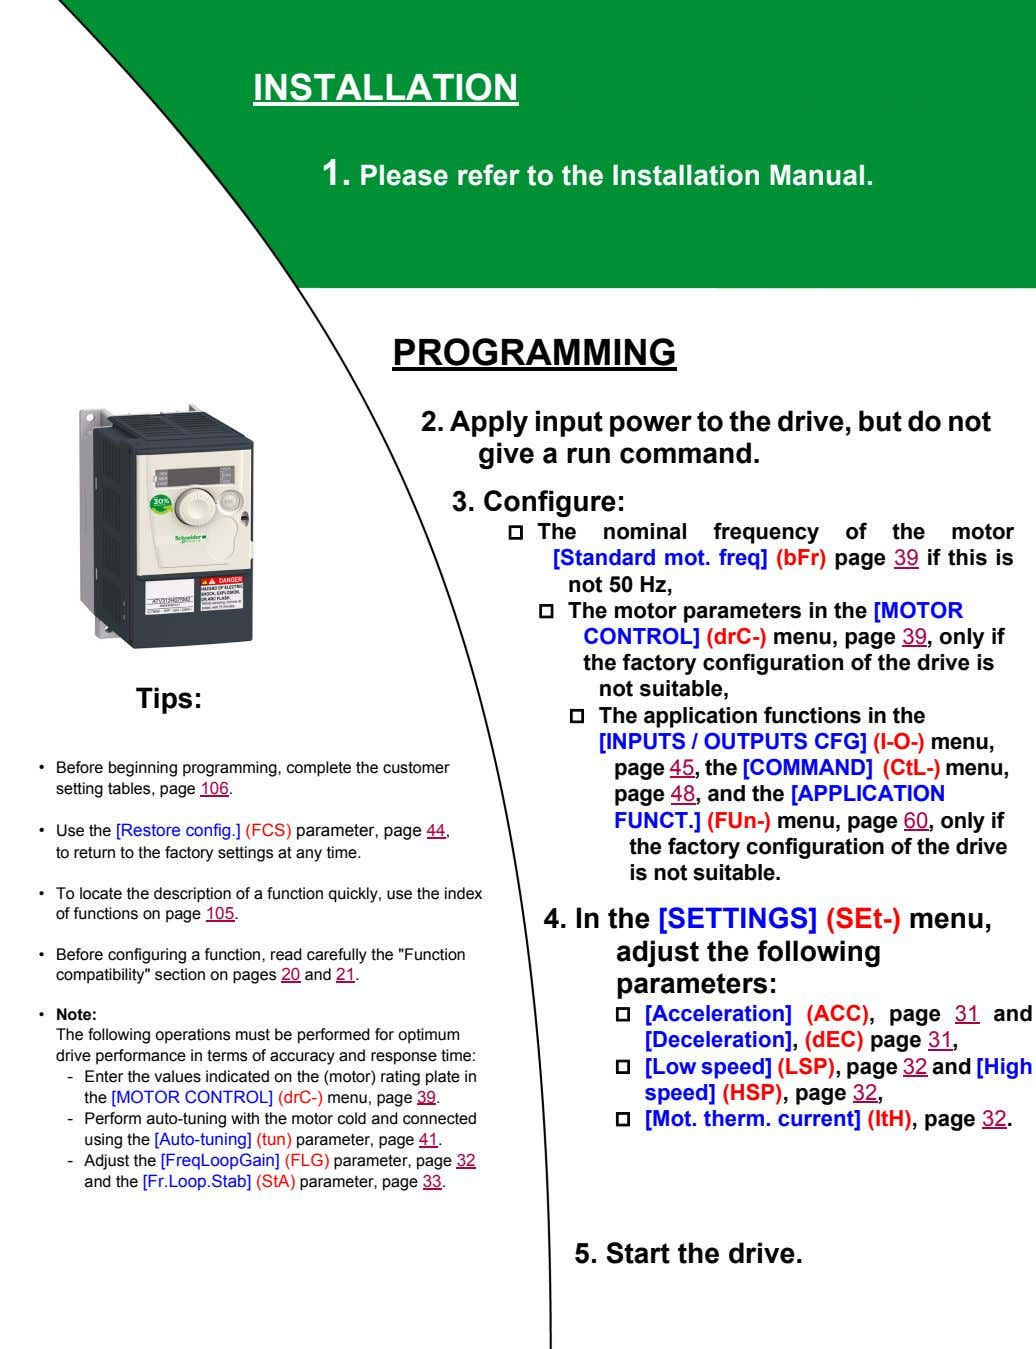 INSTALLATION 1. Please refer to the Installation Manual. PROGRAMMING 2. Apply input power to the